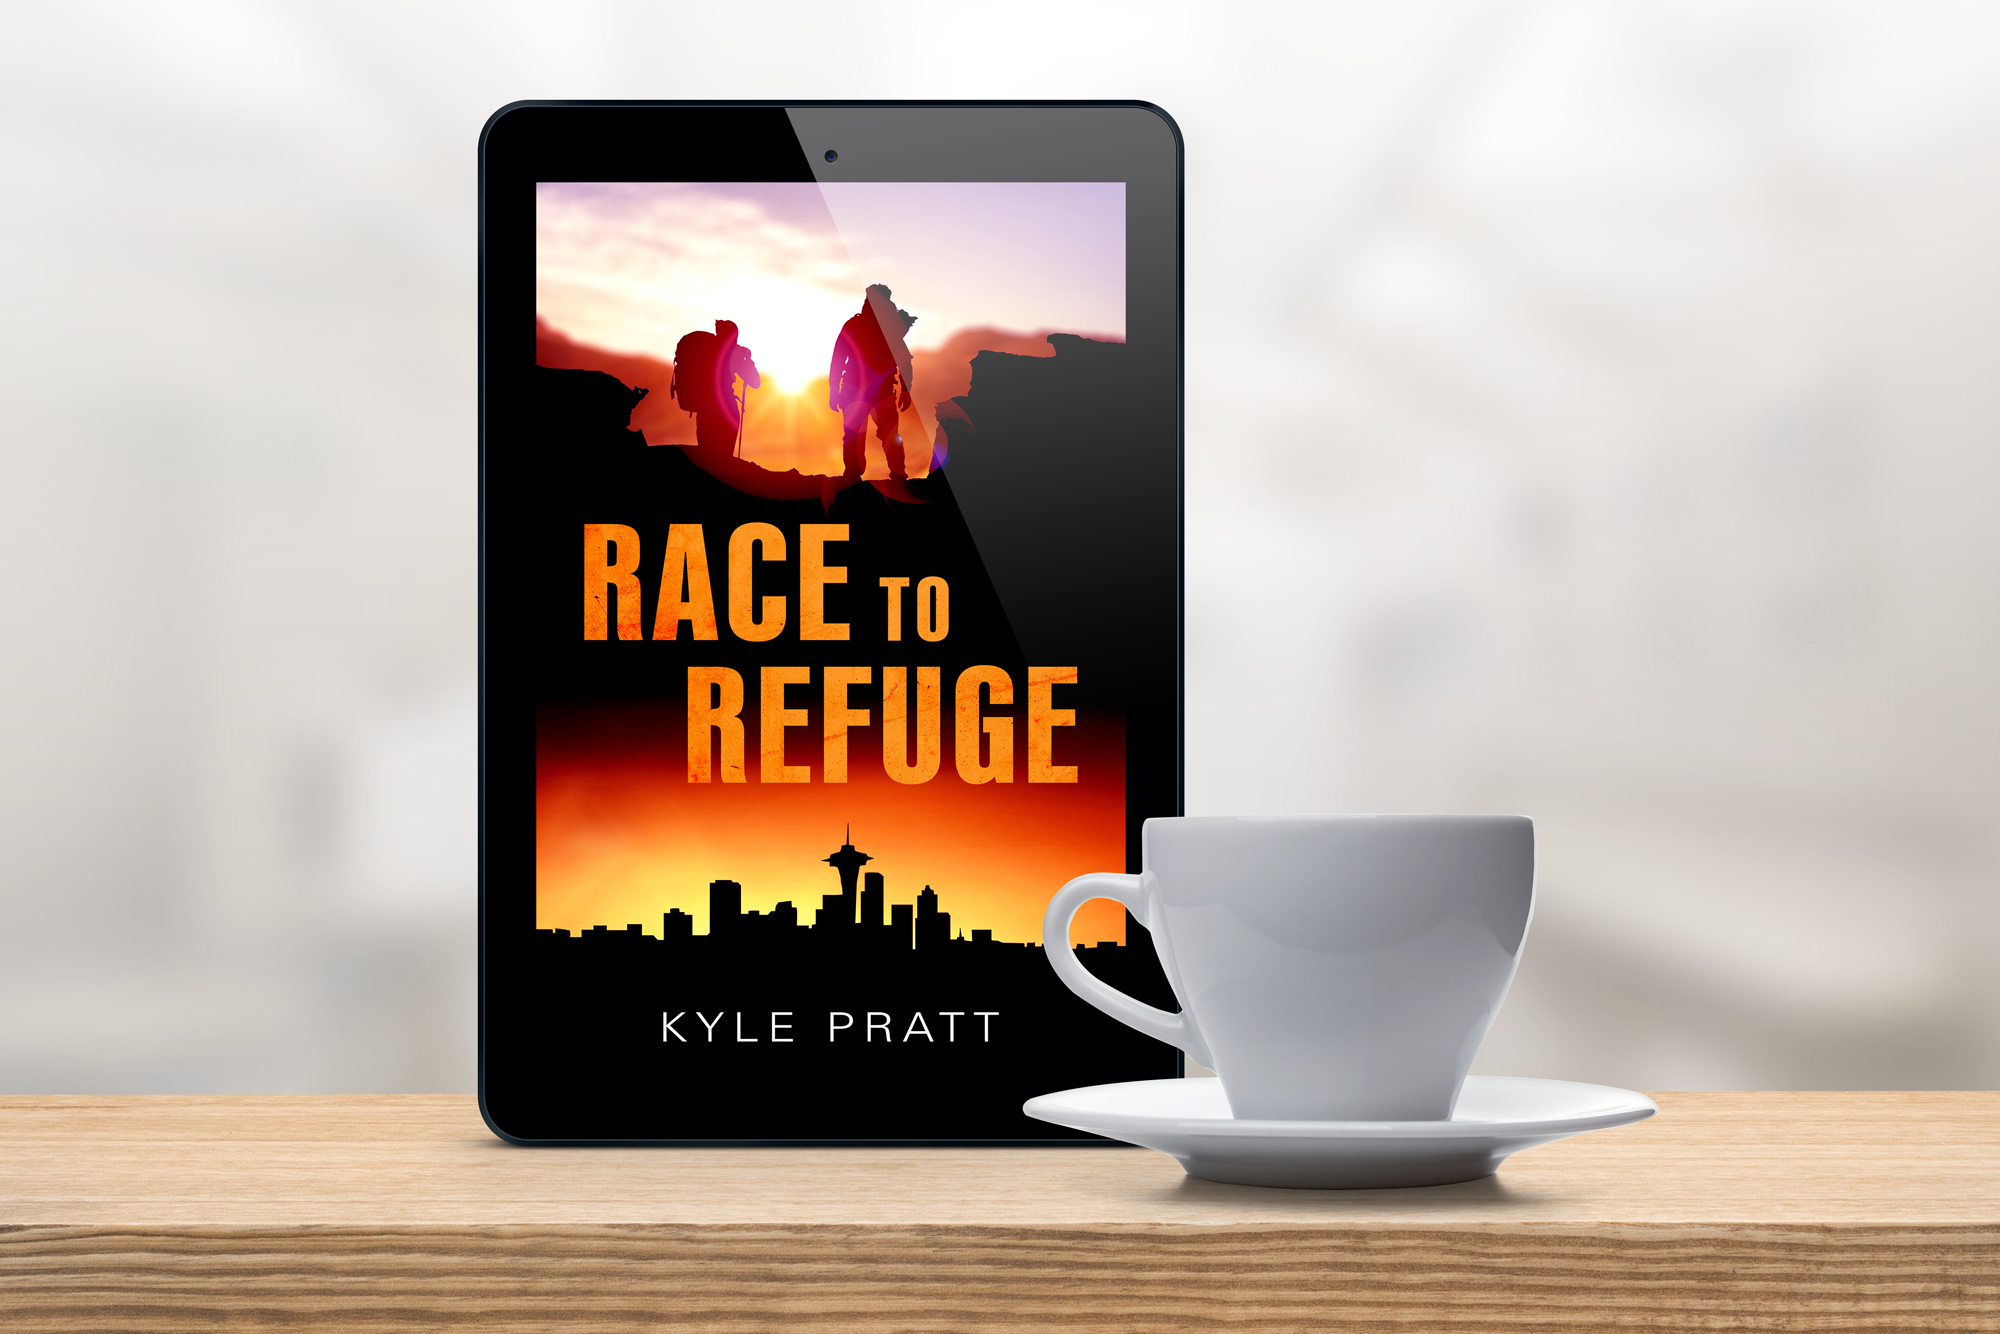 Pratt_RACE-TO-REFUGE_ebook-mockup_4.png